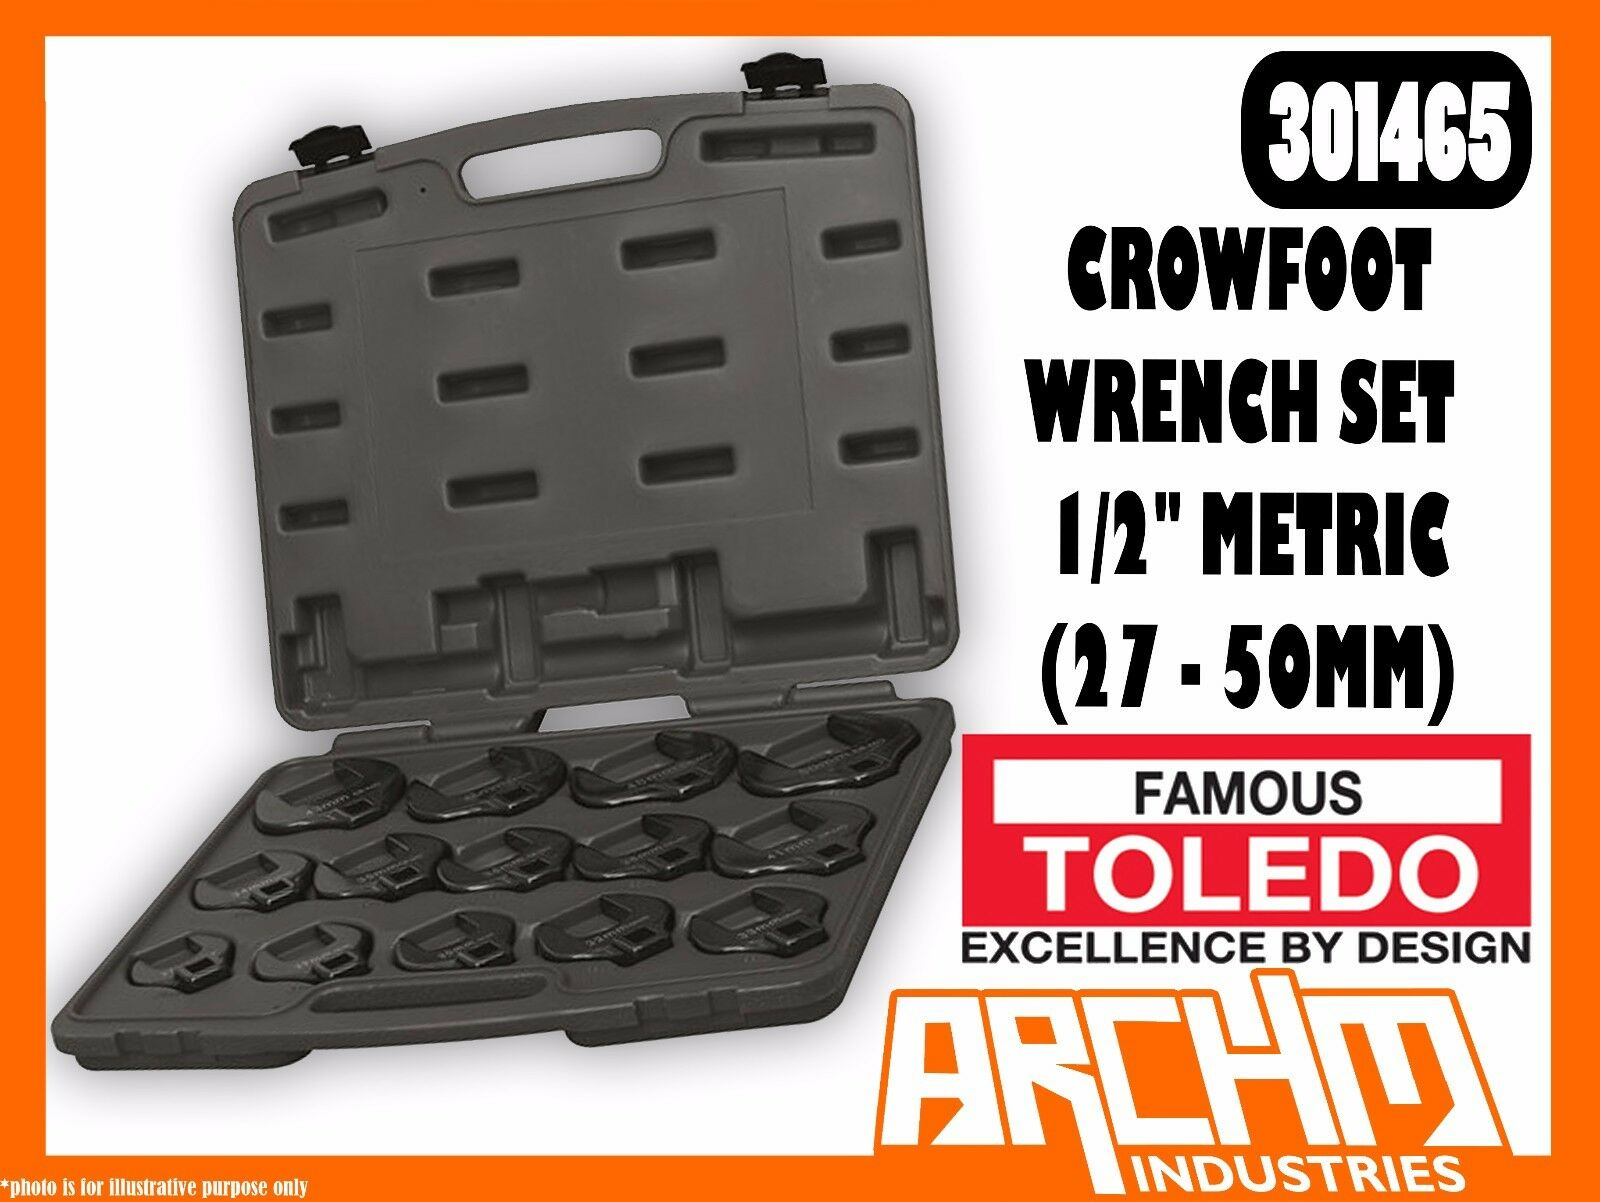 TOLEDO 301465 - CROWFOOT WRENCH SET 1 2  - METRIC (27 - 50MM) 14 PC STRAIGHT JAW